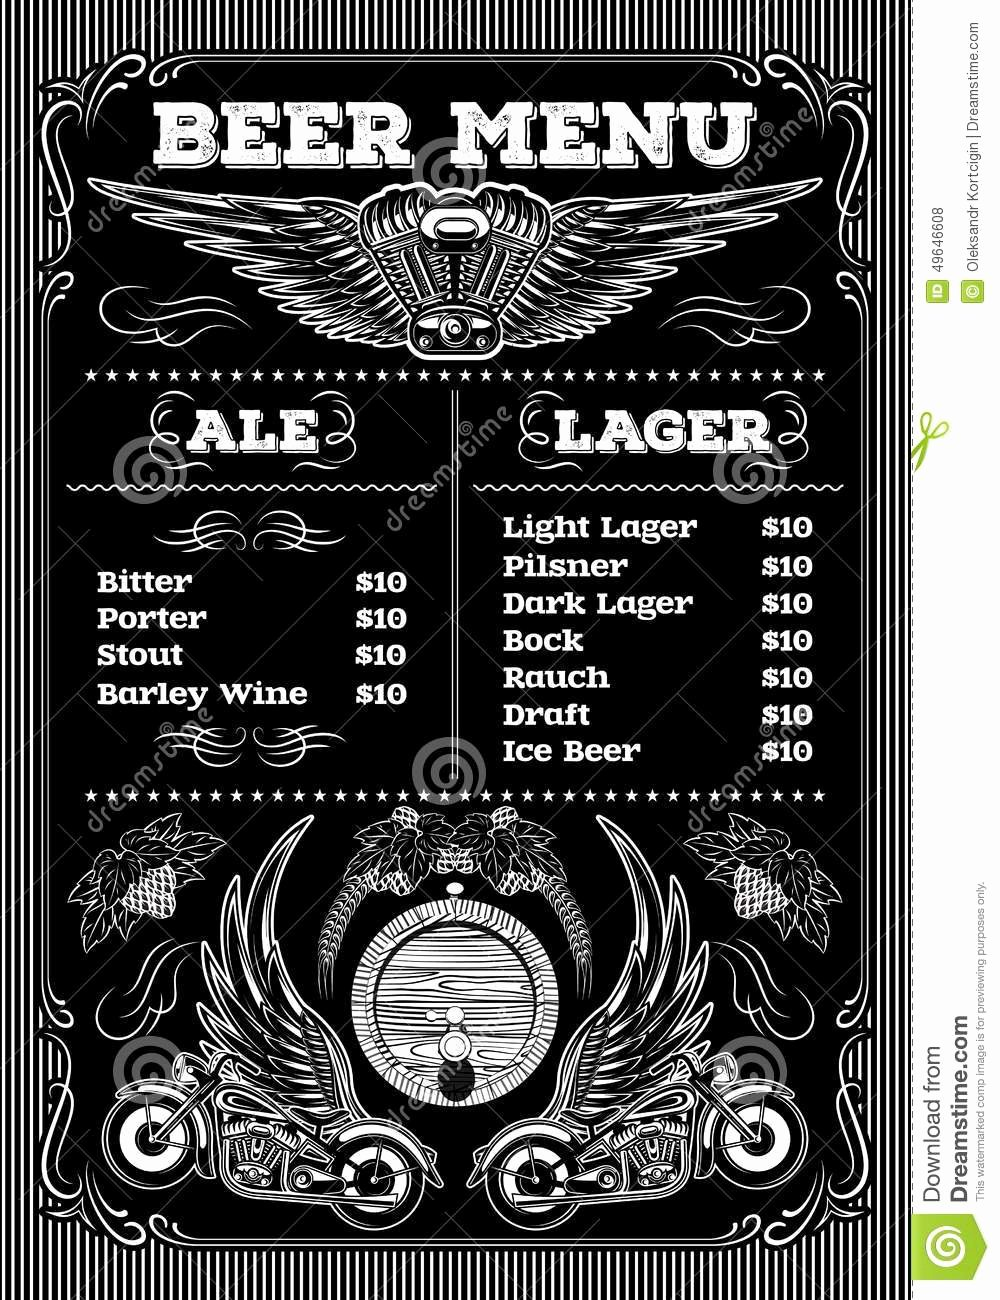 Free Beer Menu Template Awesome Template for the Beer Menu Black Background with